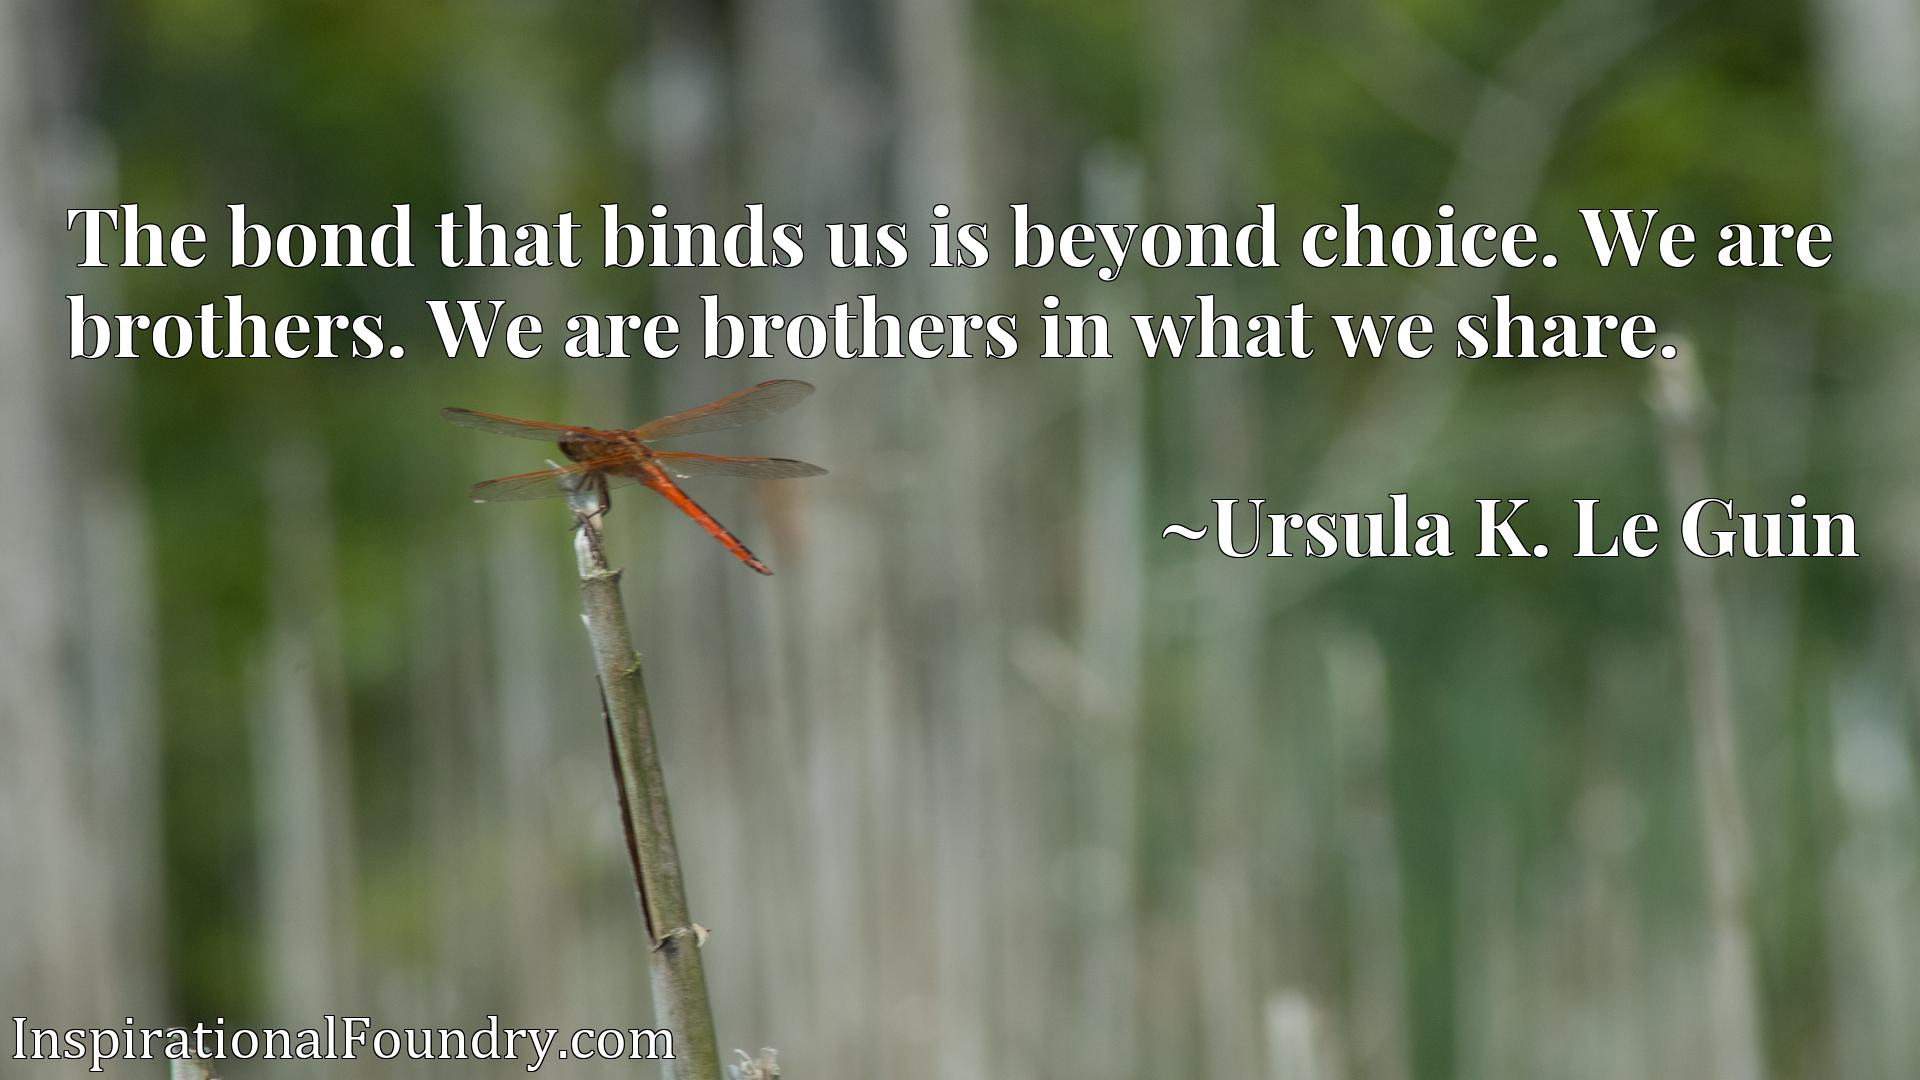 The bond that binds us is beyond choice. We are brothers. We are brothers in what we share.